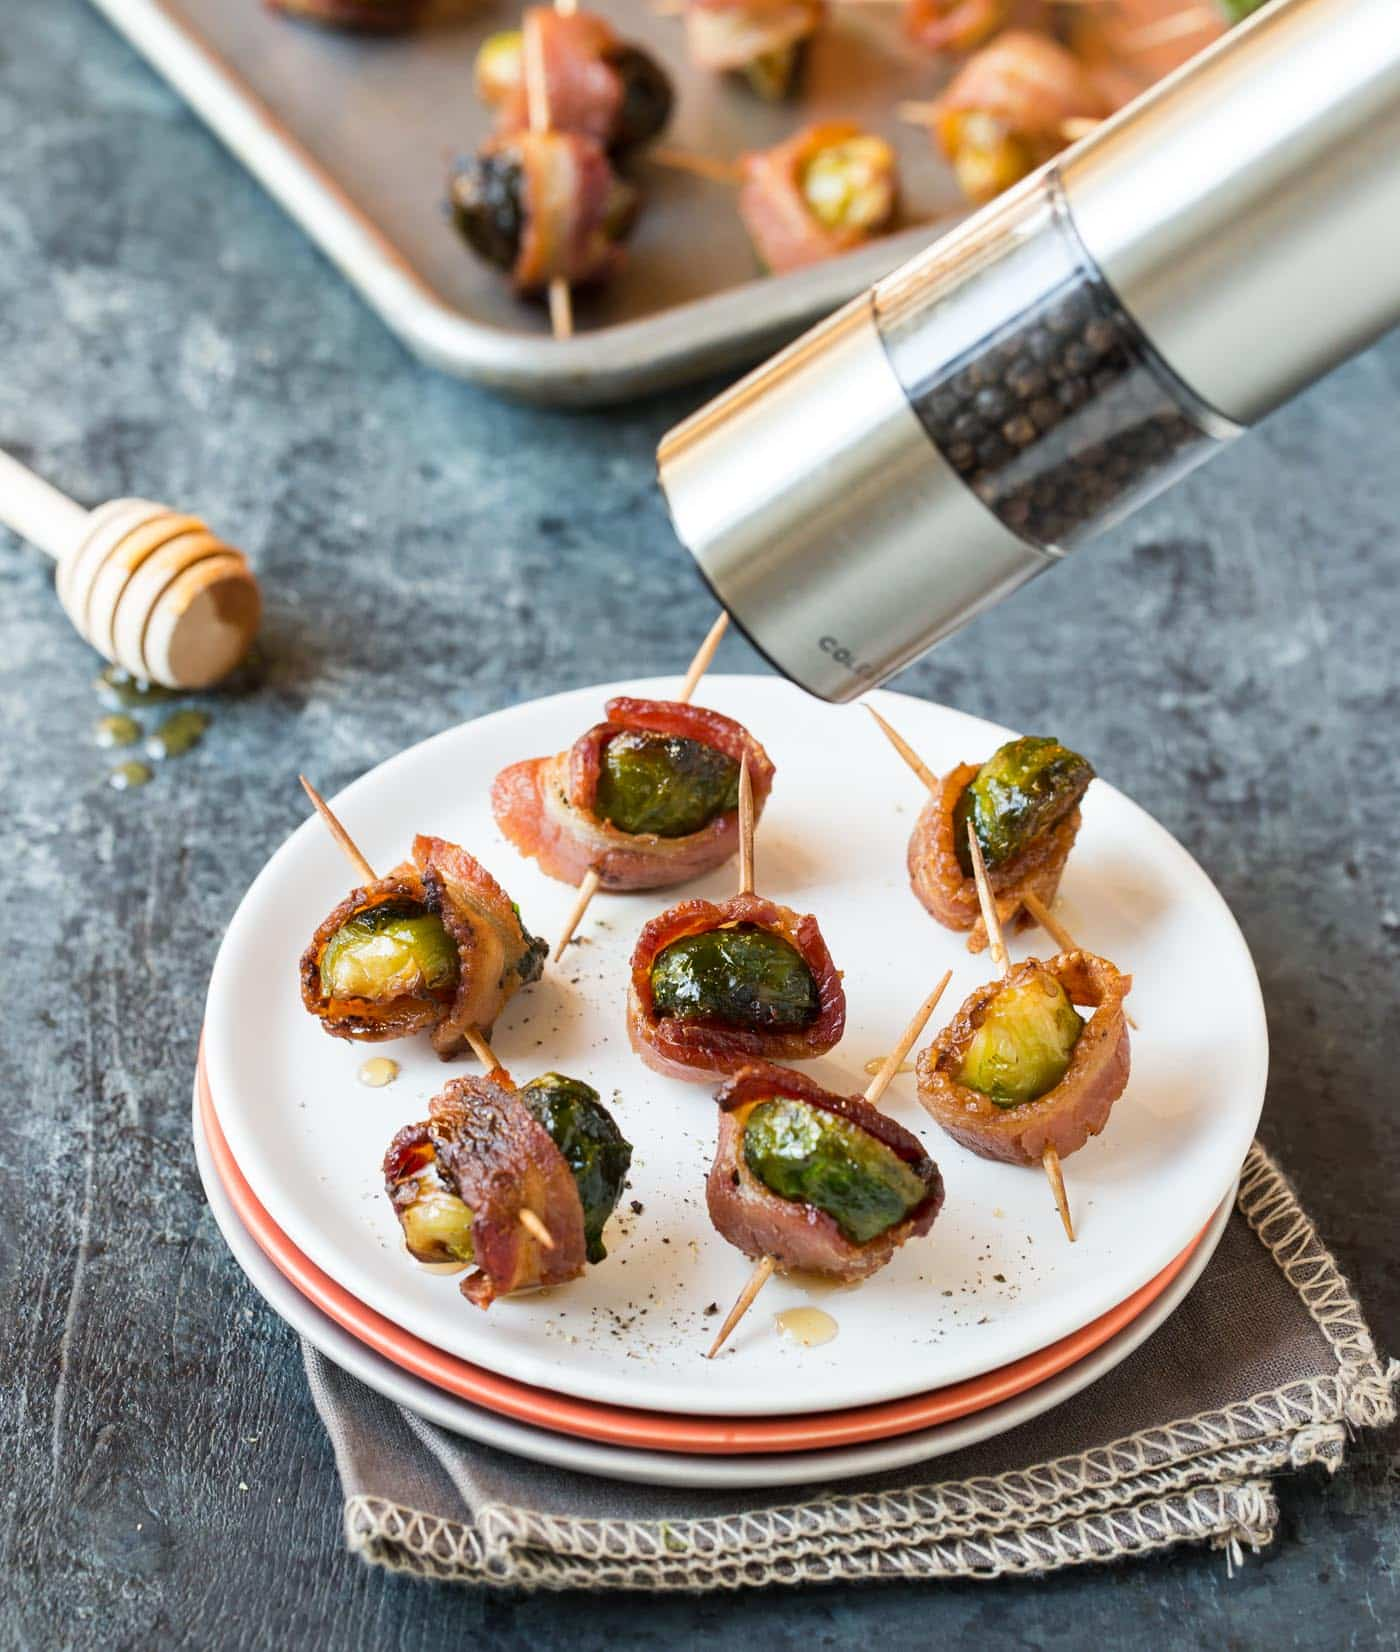 Need simple finger food for your next party? These make ahead Bacon Wrapped Brussels Sprouts with Maple Syrup are always a hit!